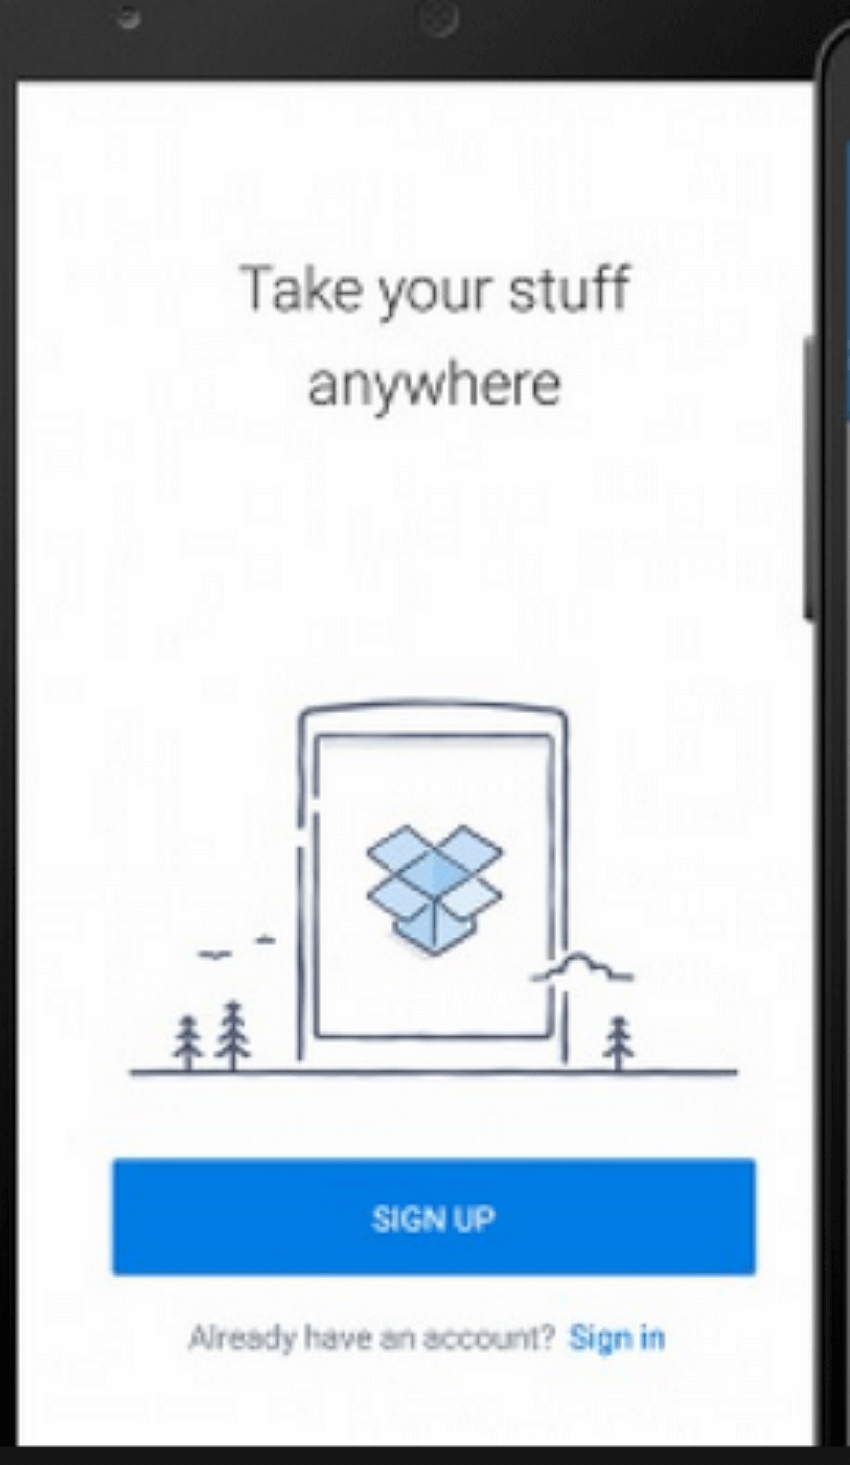 dropbox-sign-up